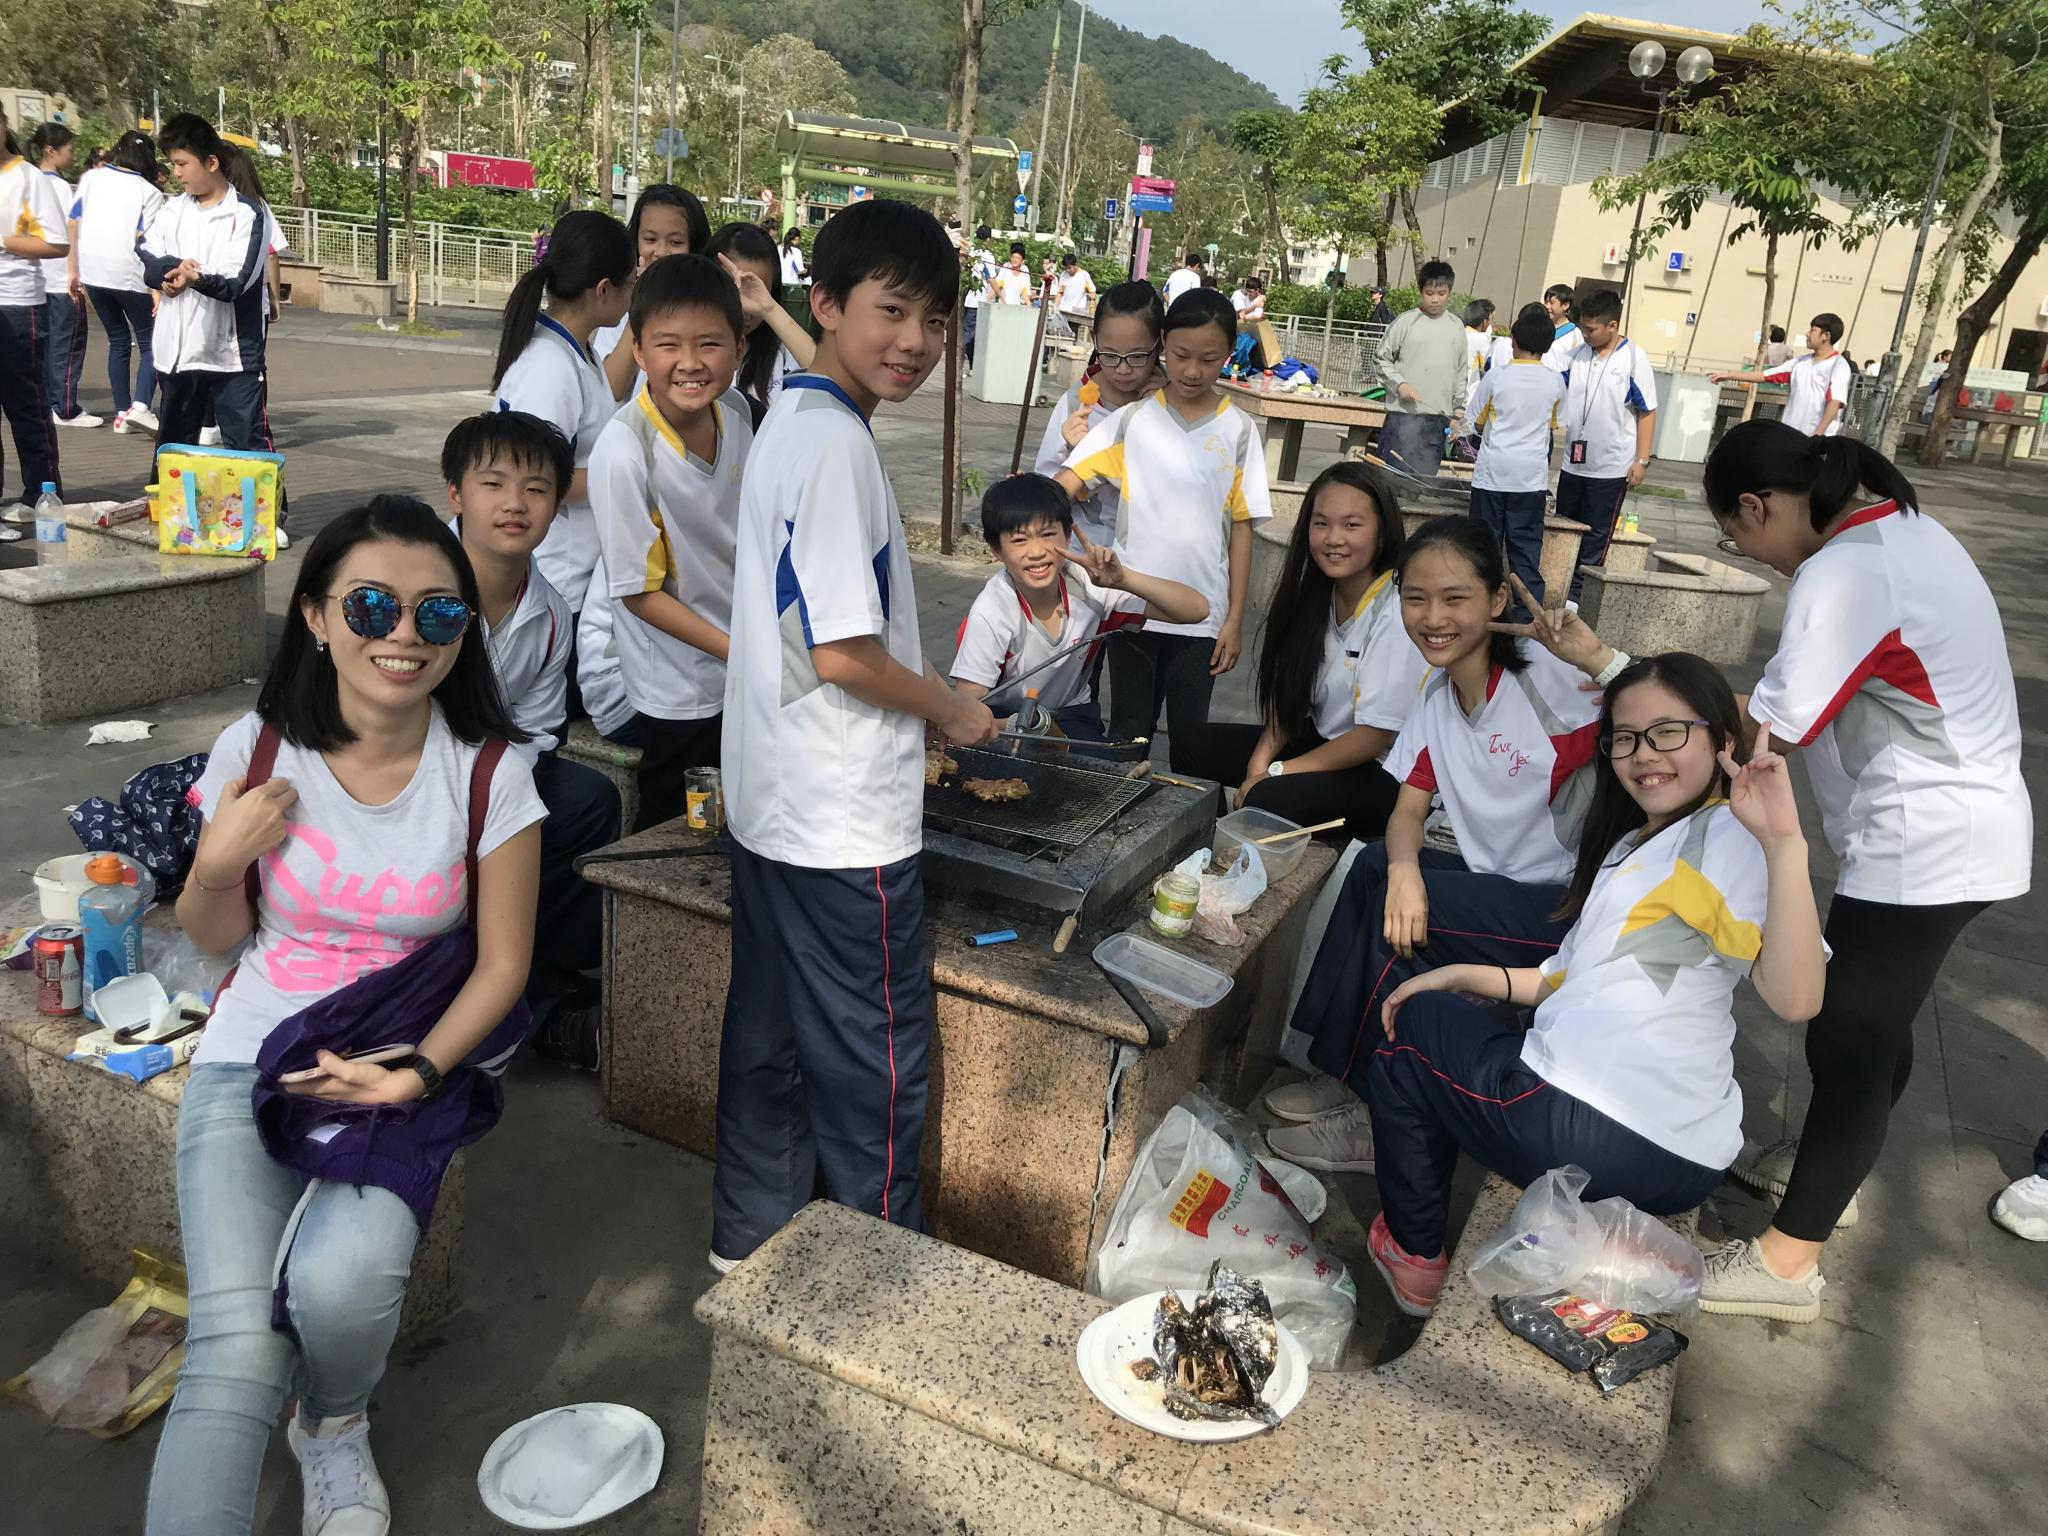 Ms. Lai and students from her class pose for a photo around their barbecue pit.